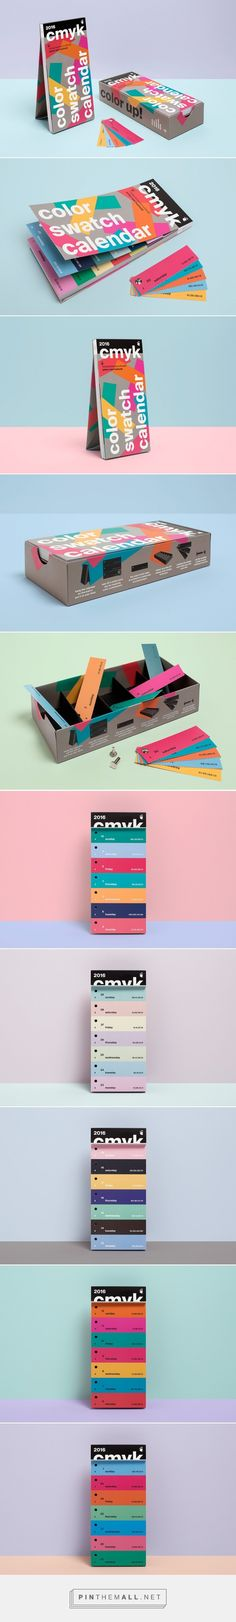 Color Swatch Calendar 2016 Designed by Peter von Freyhold PD